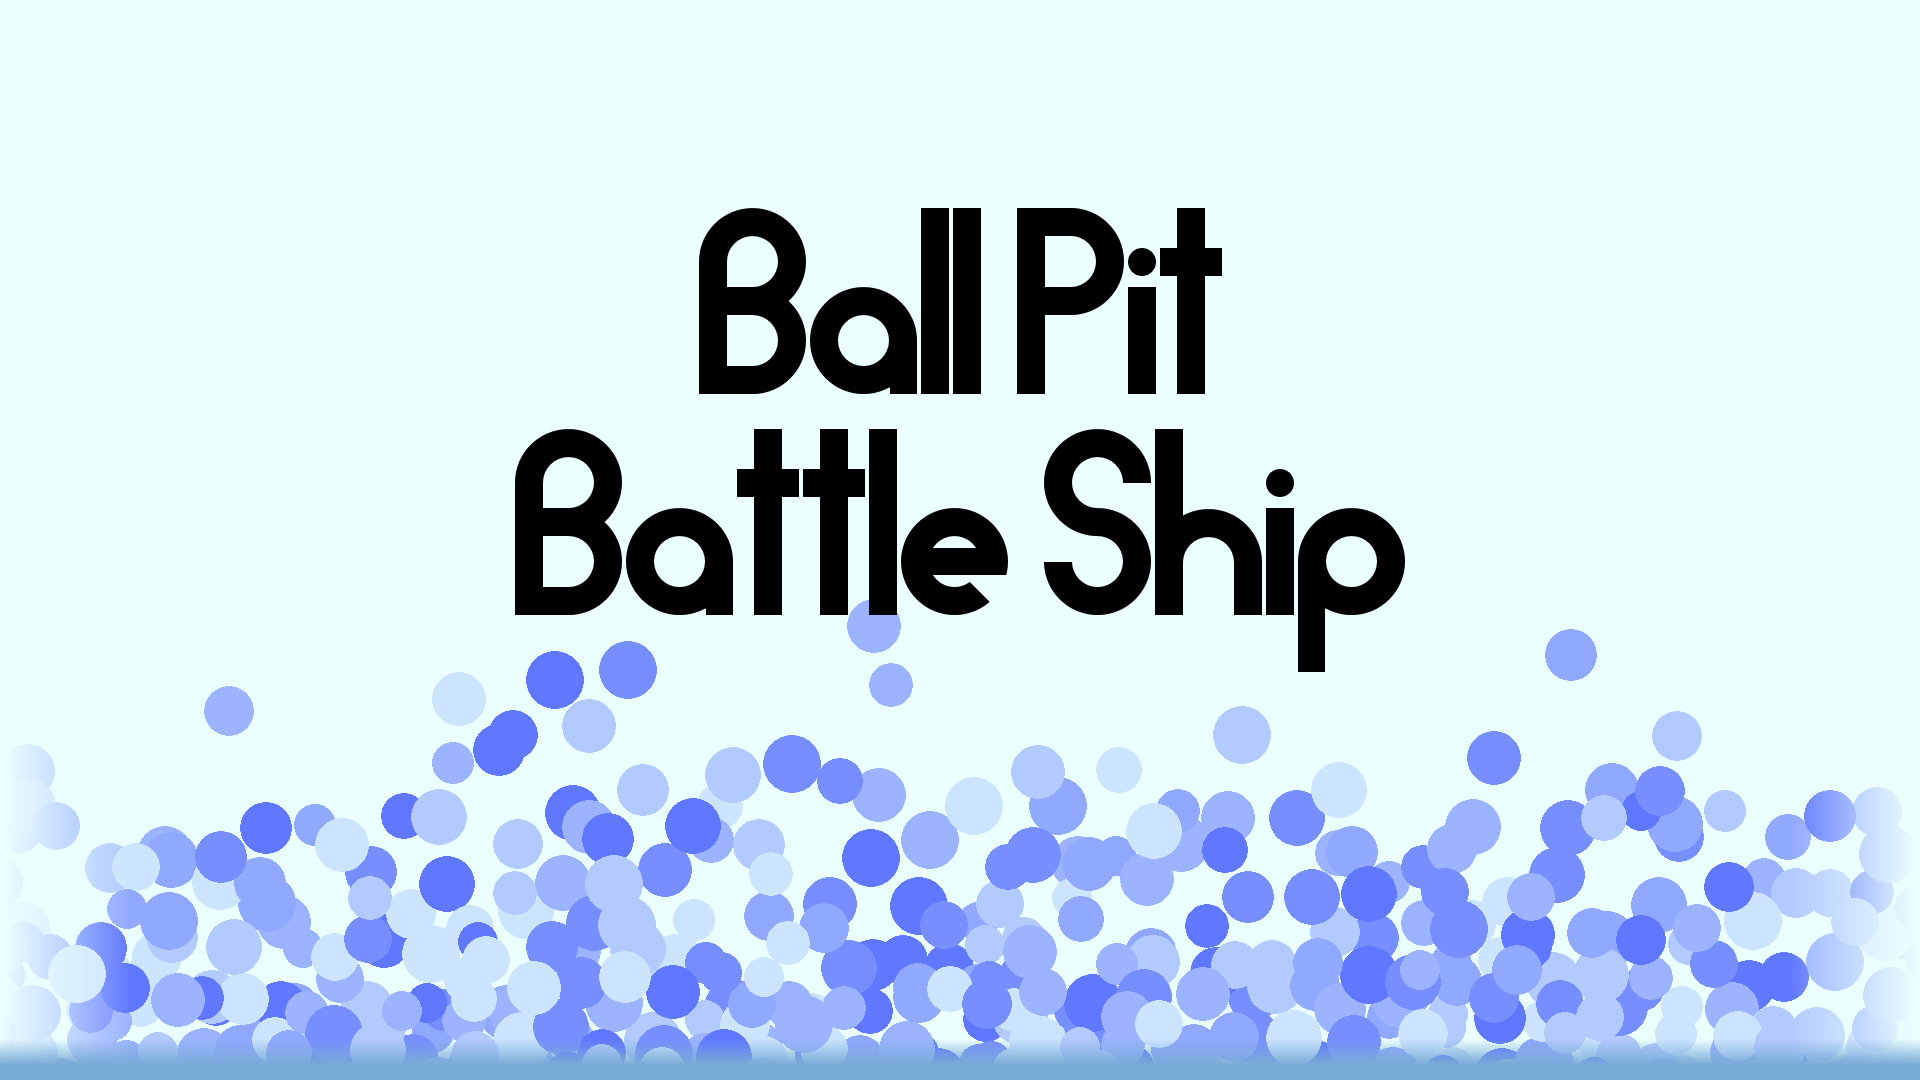 Ball Pit Battle Ship